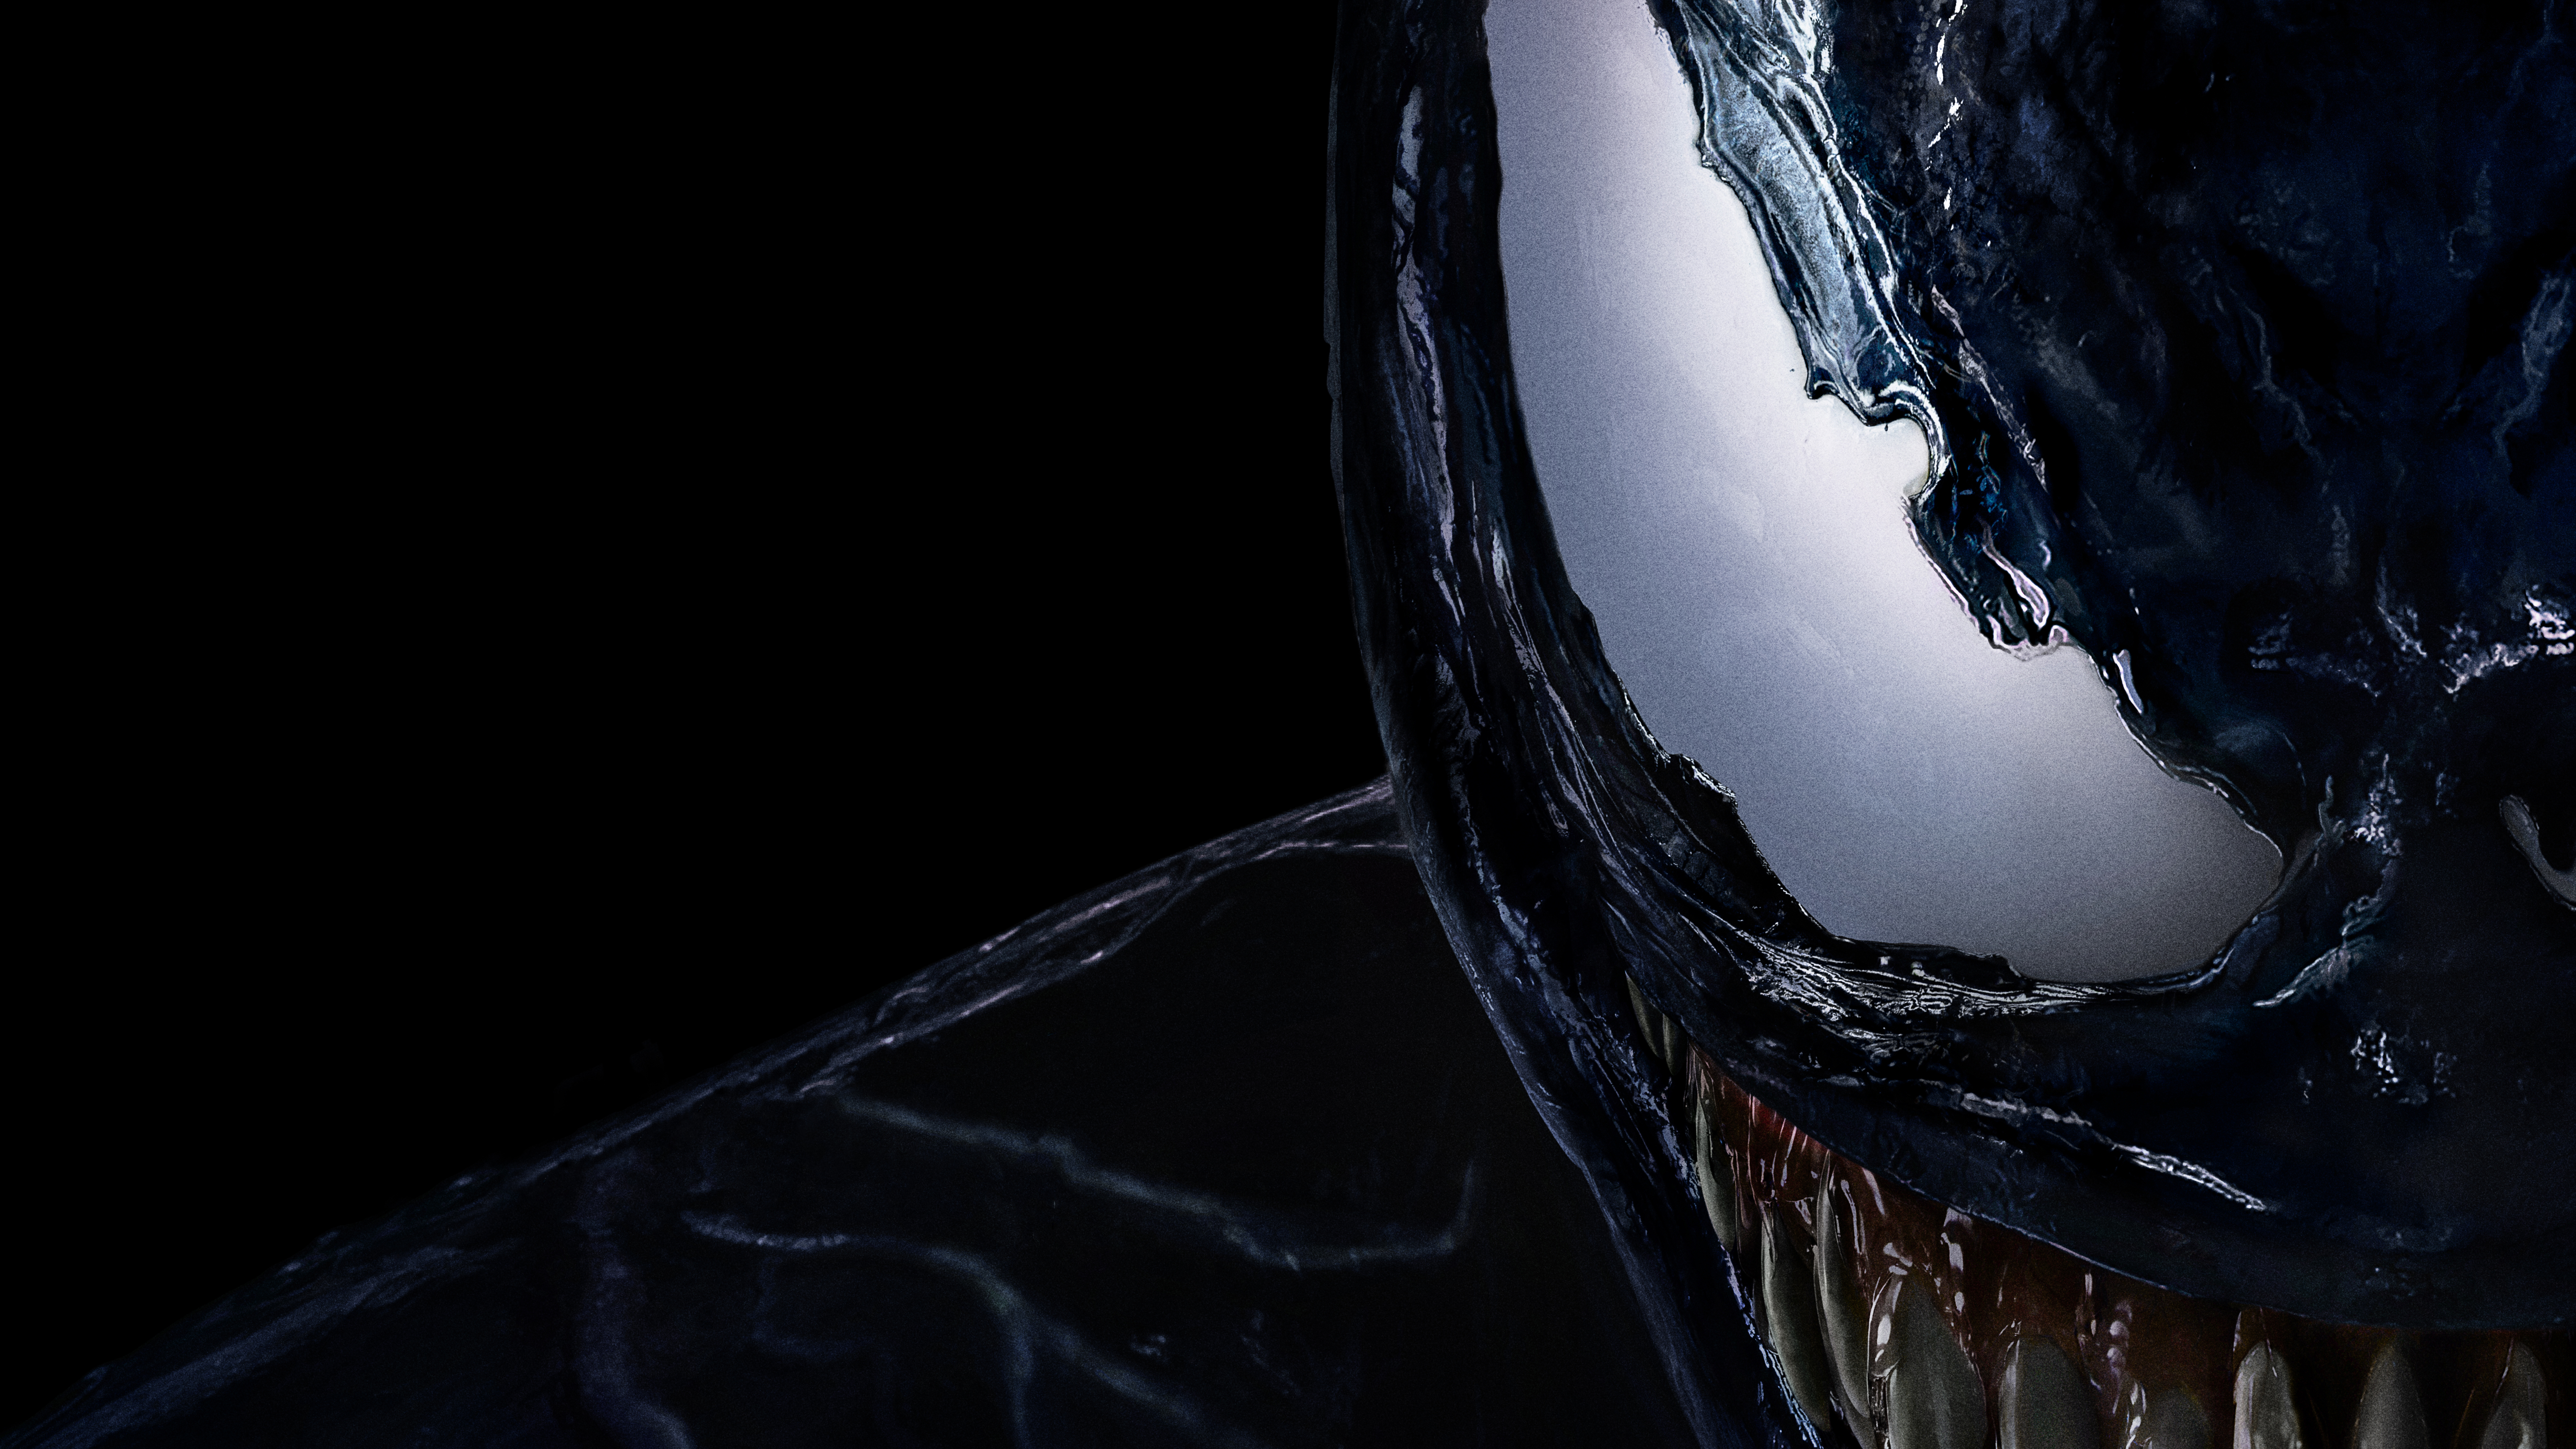 Venom Movie Official Poster 8k, HD Movies, 4k Wallpapers ...